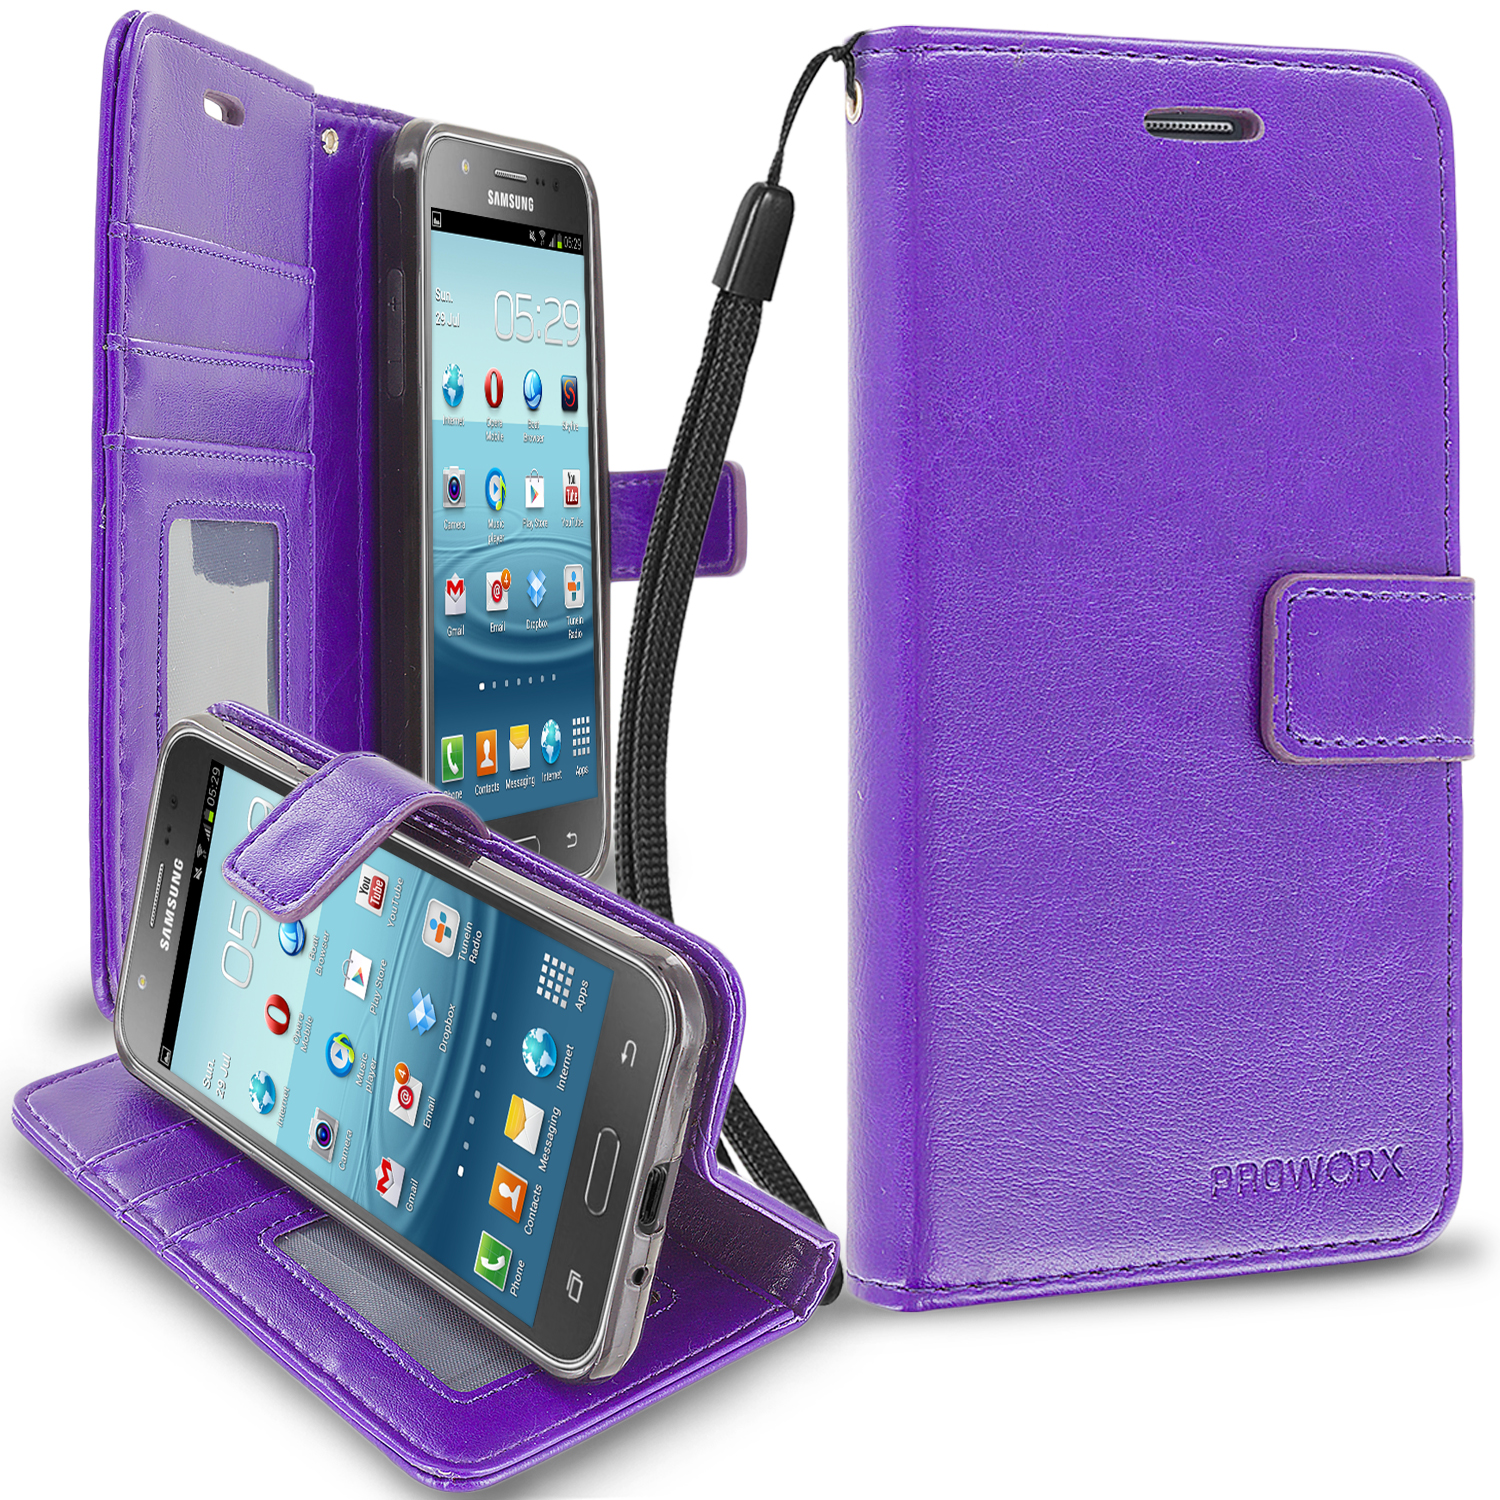 Samsung Galaxy J3 J320 / Amp Prime / Express Prime / J3V / SKY / SOL Purple ProWorx Wallet Case Luxury PU Leather Case Cover With Card Slots & Stand